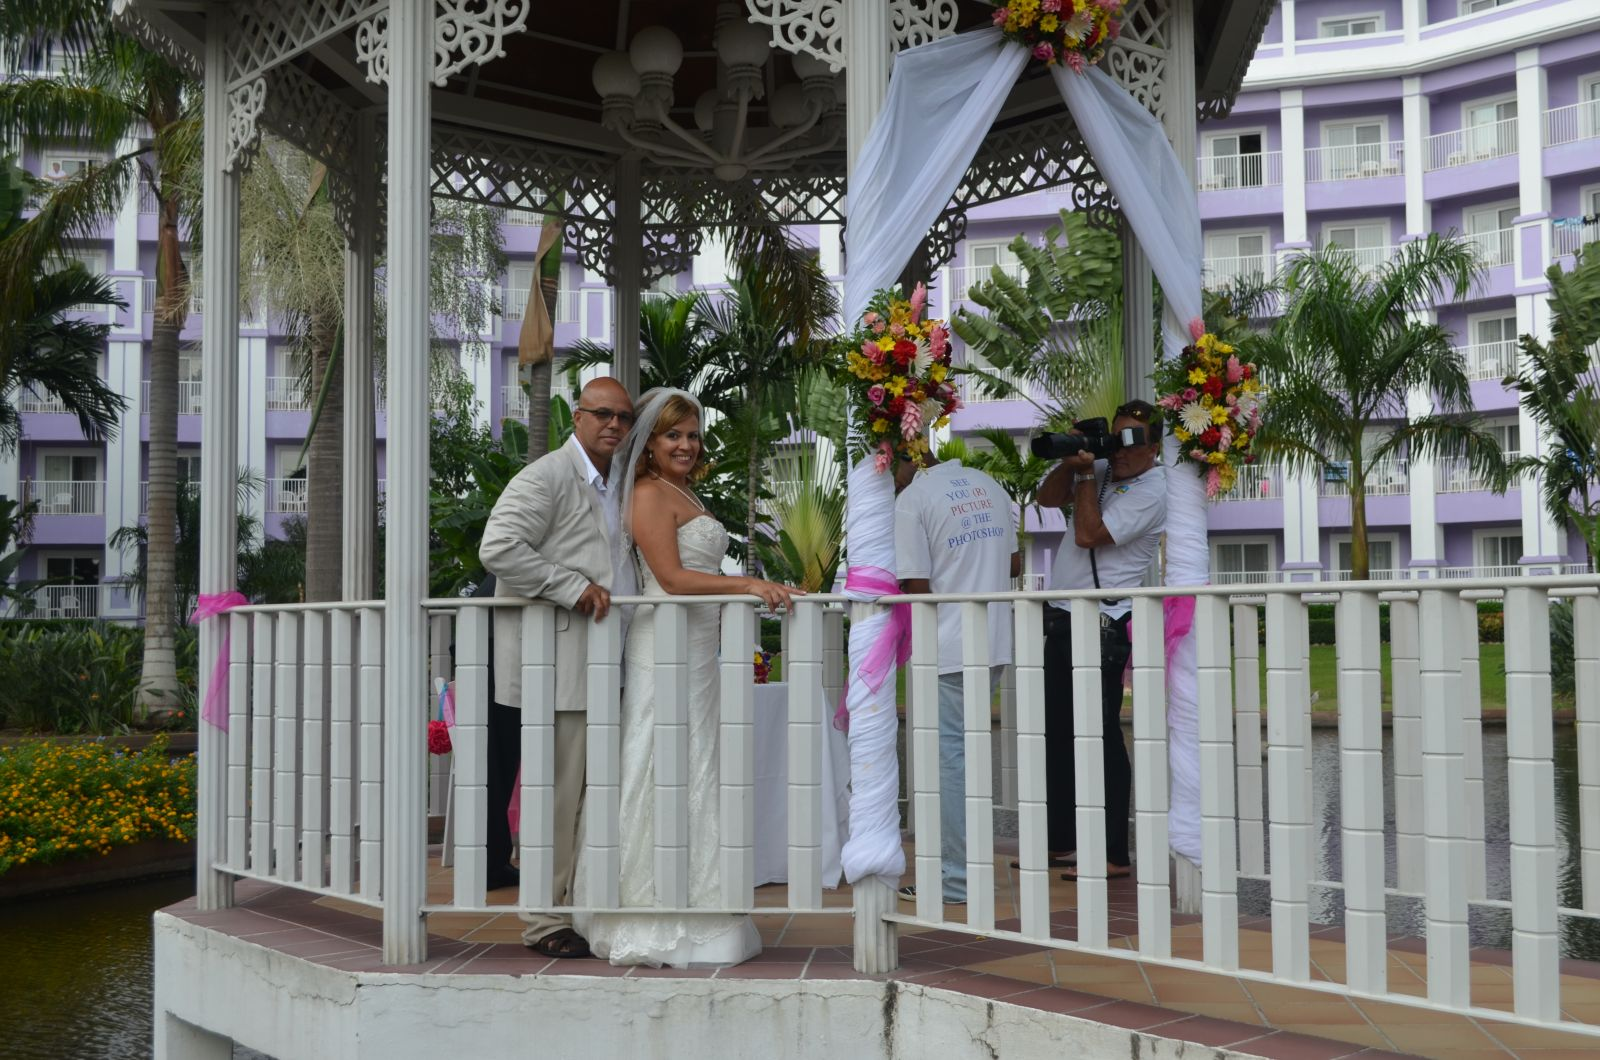 In the gazebo after the ceremony